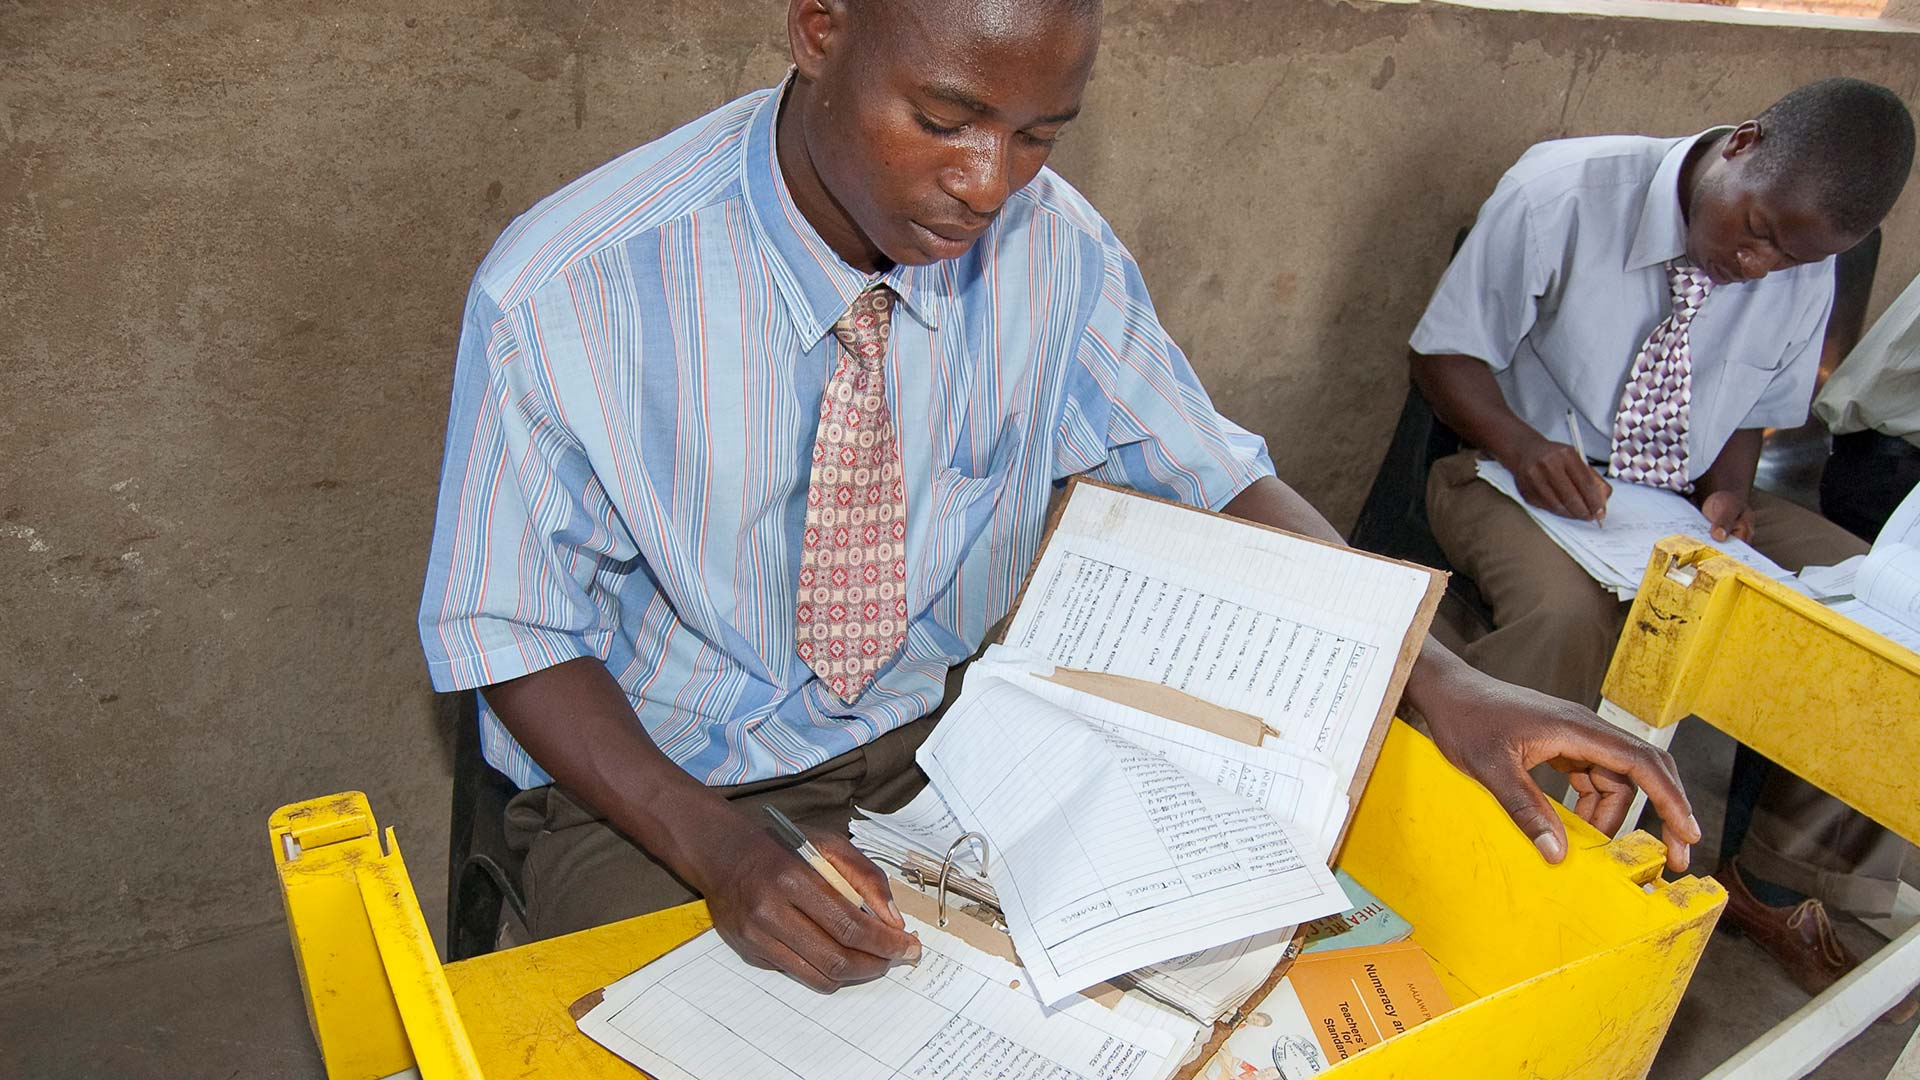 Malawian children doing homework at desks